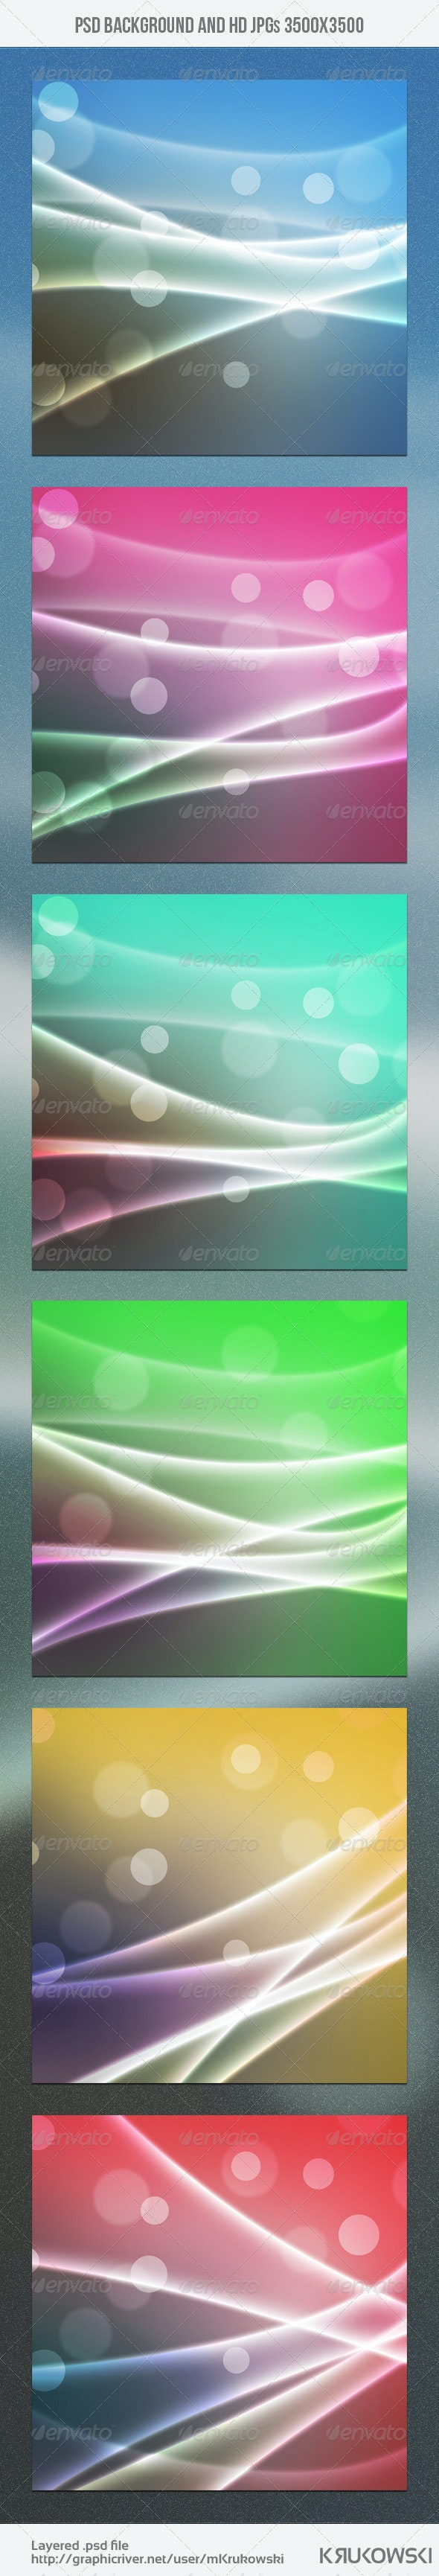 Light Waves Background - Abstract Backgrounds